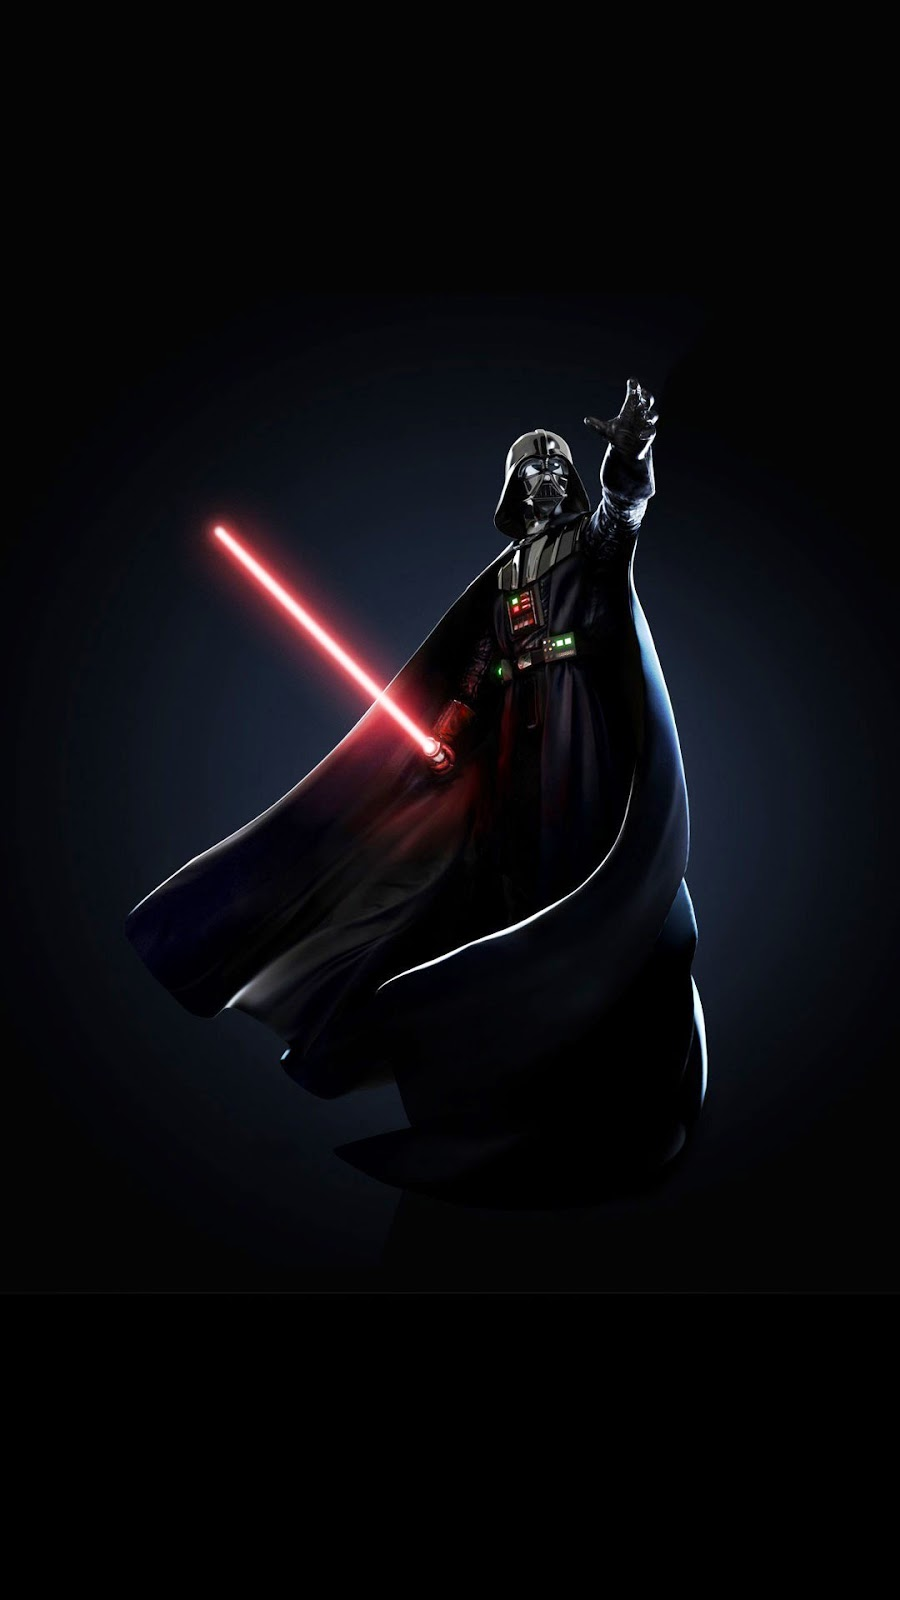 Wallpaper Darth Vader Star Wars photos Epic Star Wars Iphone Wallpaper 900x1600